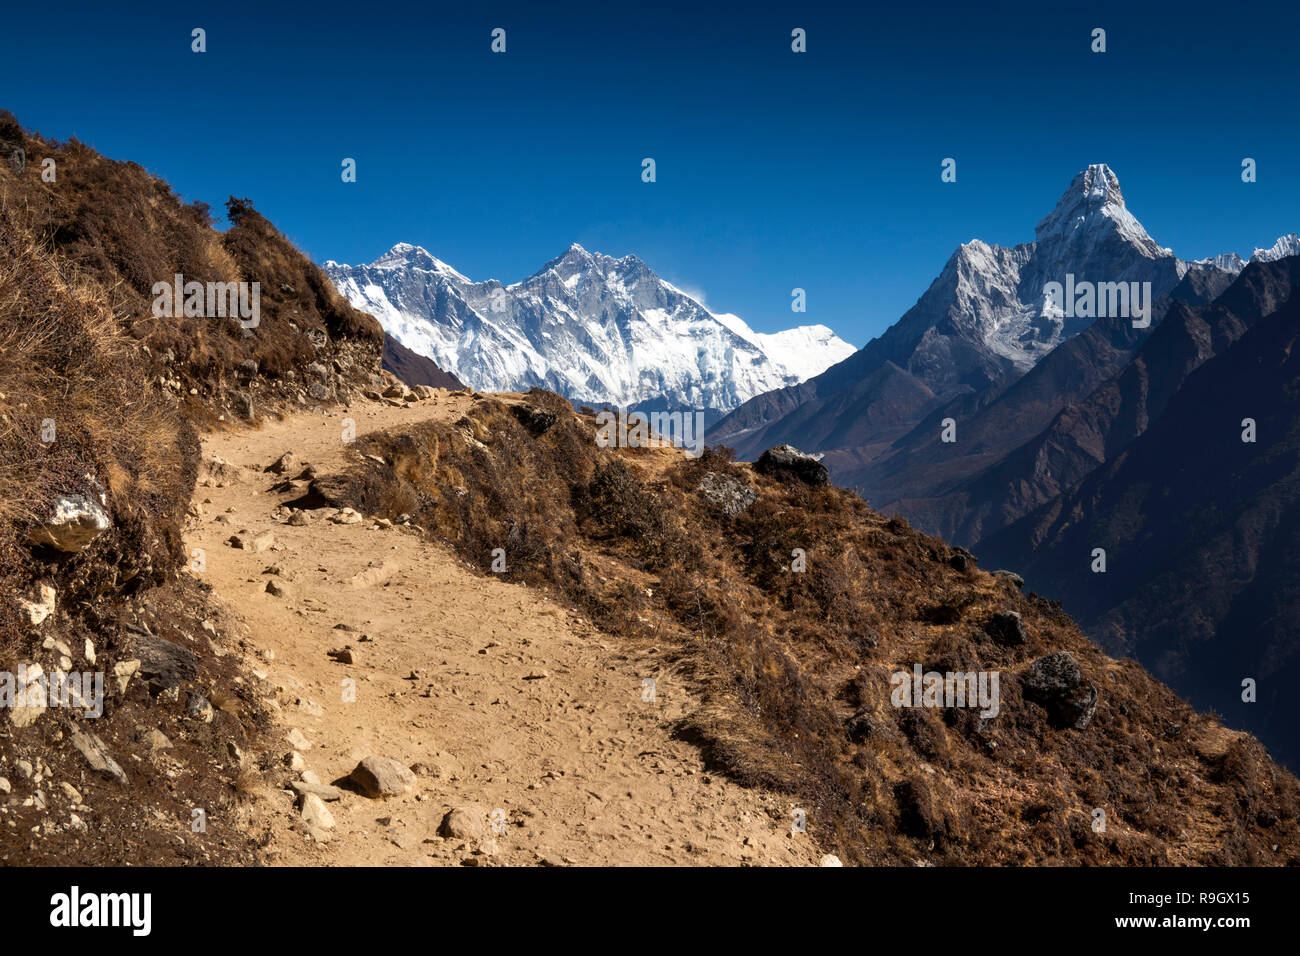 Nepal, Everest Base Camp Trek, panoramic view of Everest and surrounding Himalayan mountains from path - Stock Image